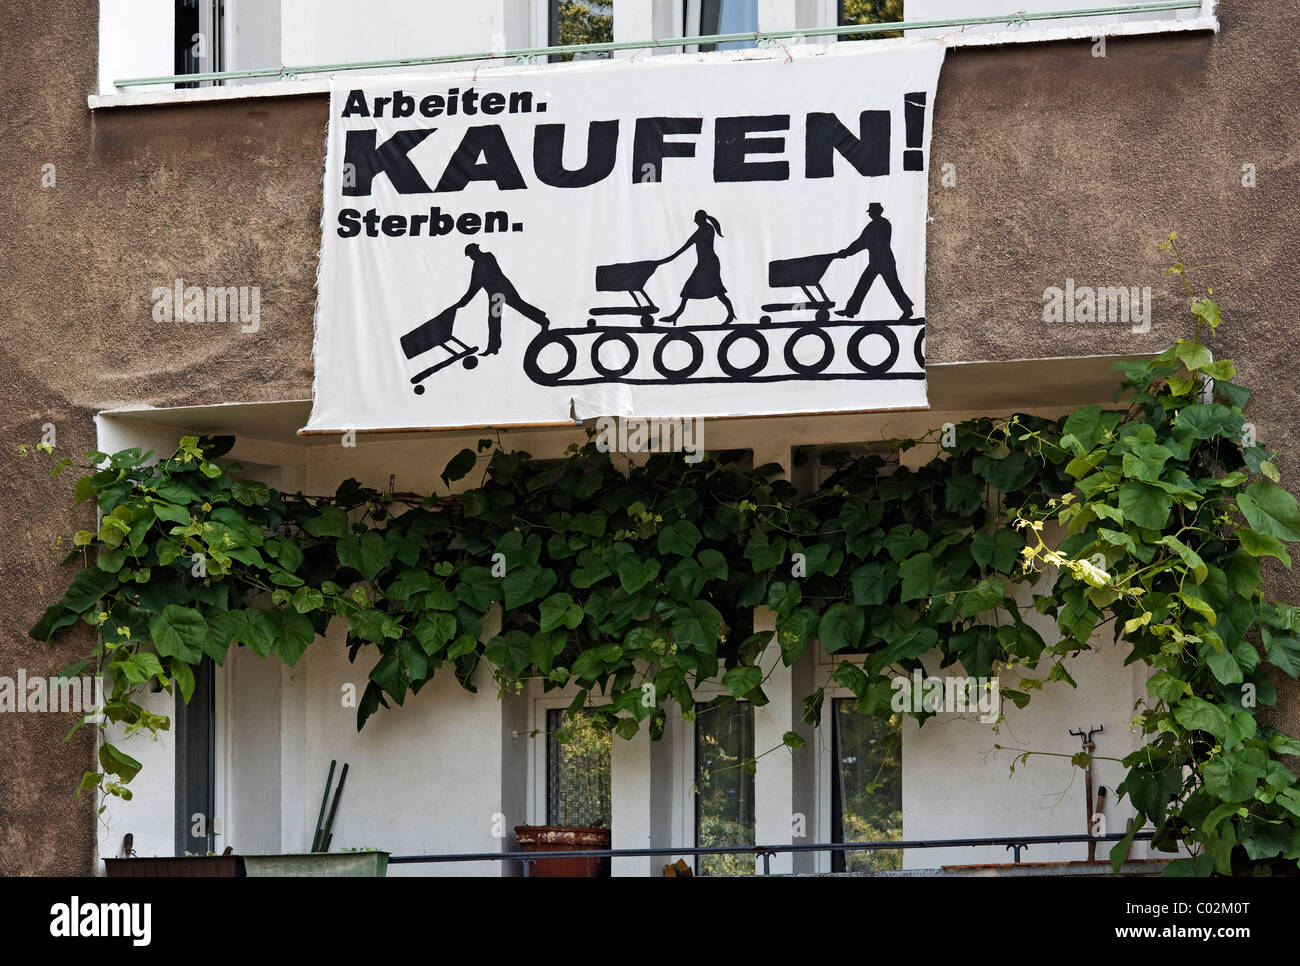 'Arbeiten kaufen sterben', German for 'work buy die', socio-critical banner on a house of former - Stock Image